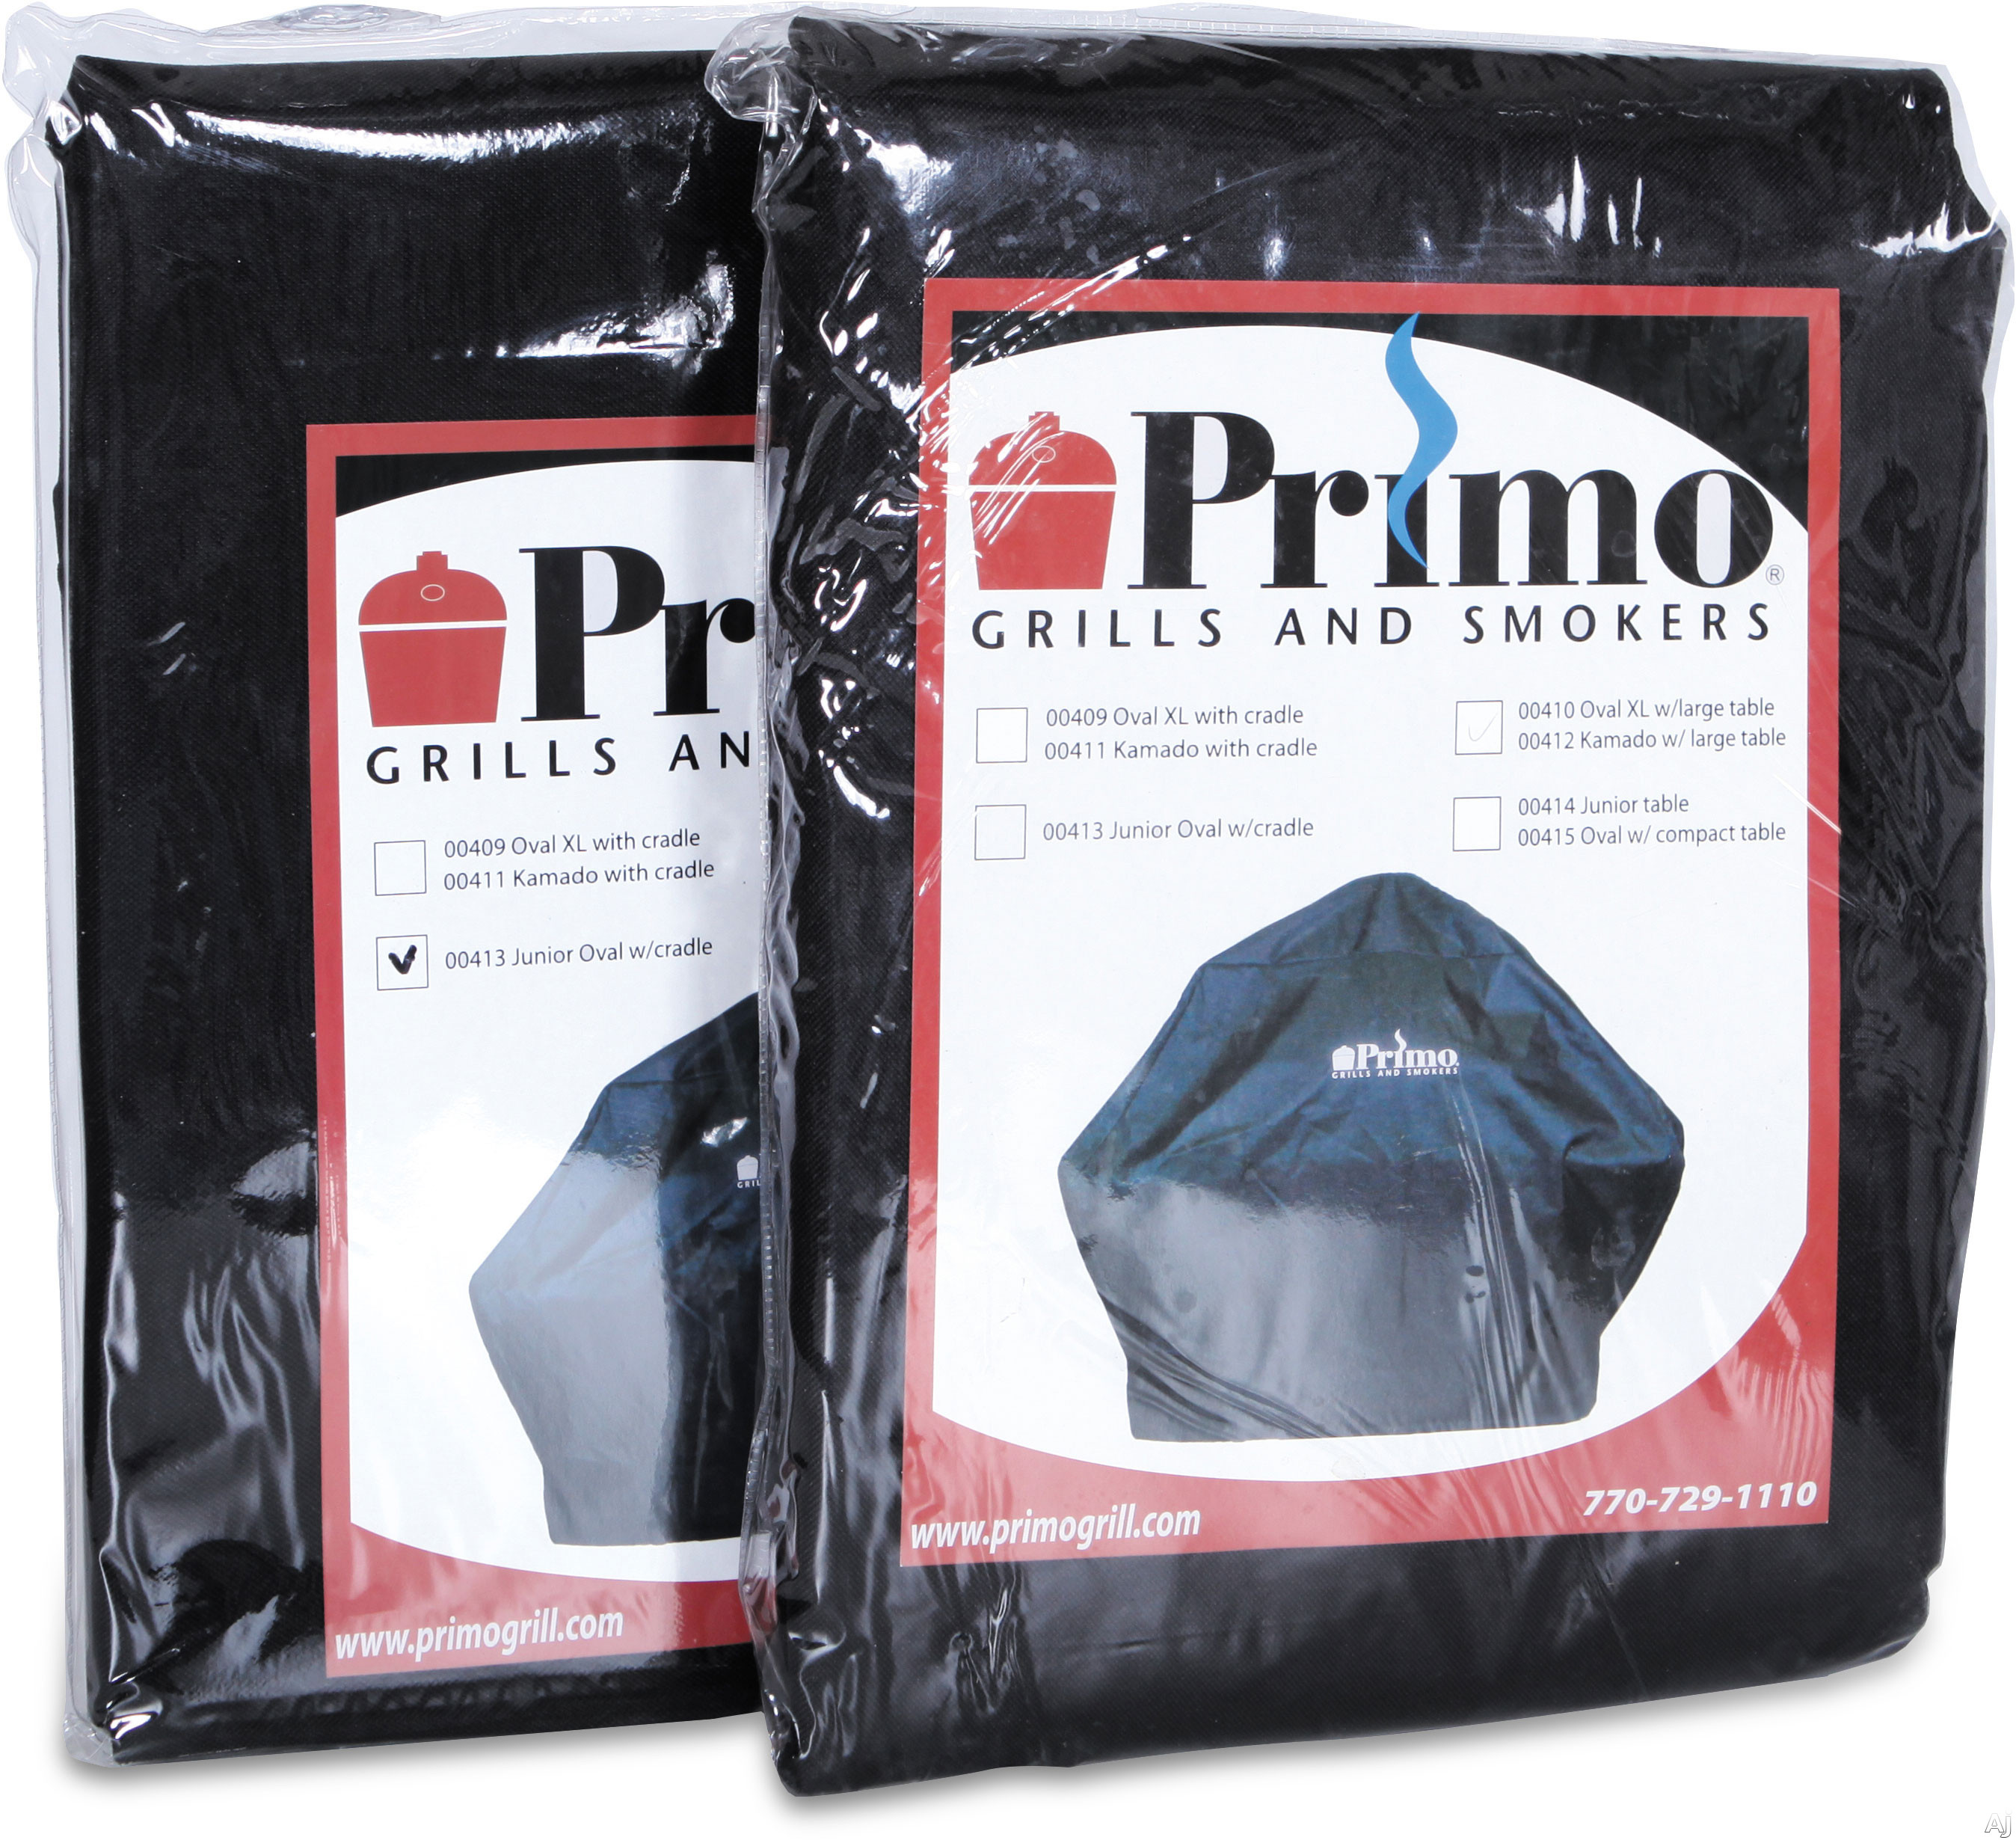 Primo 414PRIMO Grill Cover - For Oval 400 In Compact Table or Cart and For Oval 200 In Table